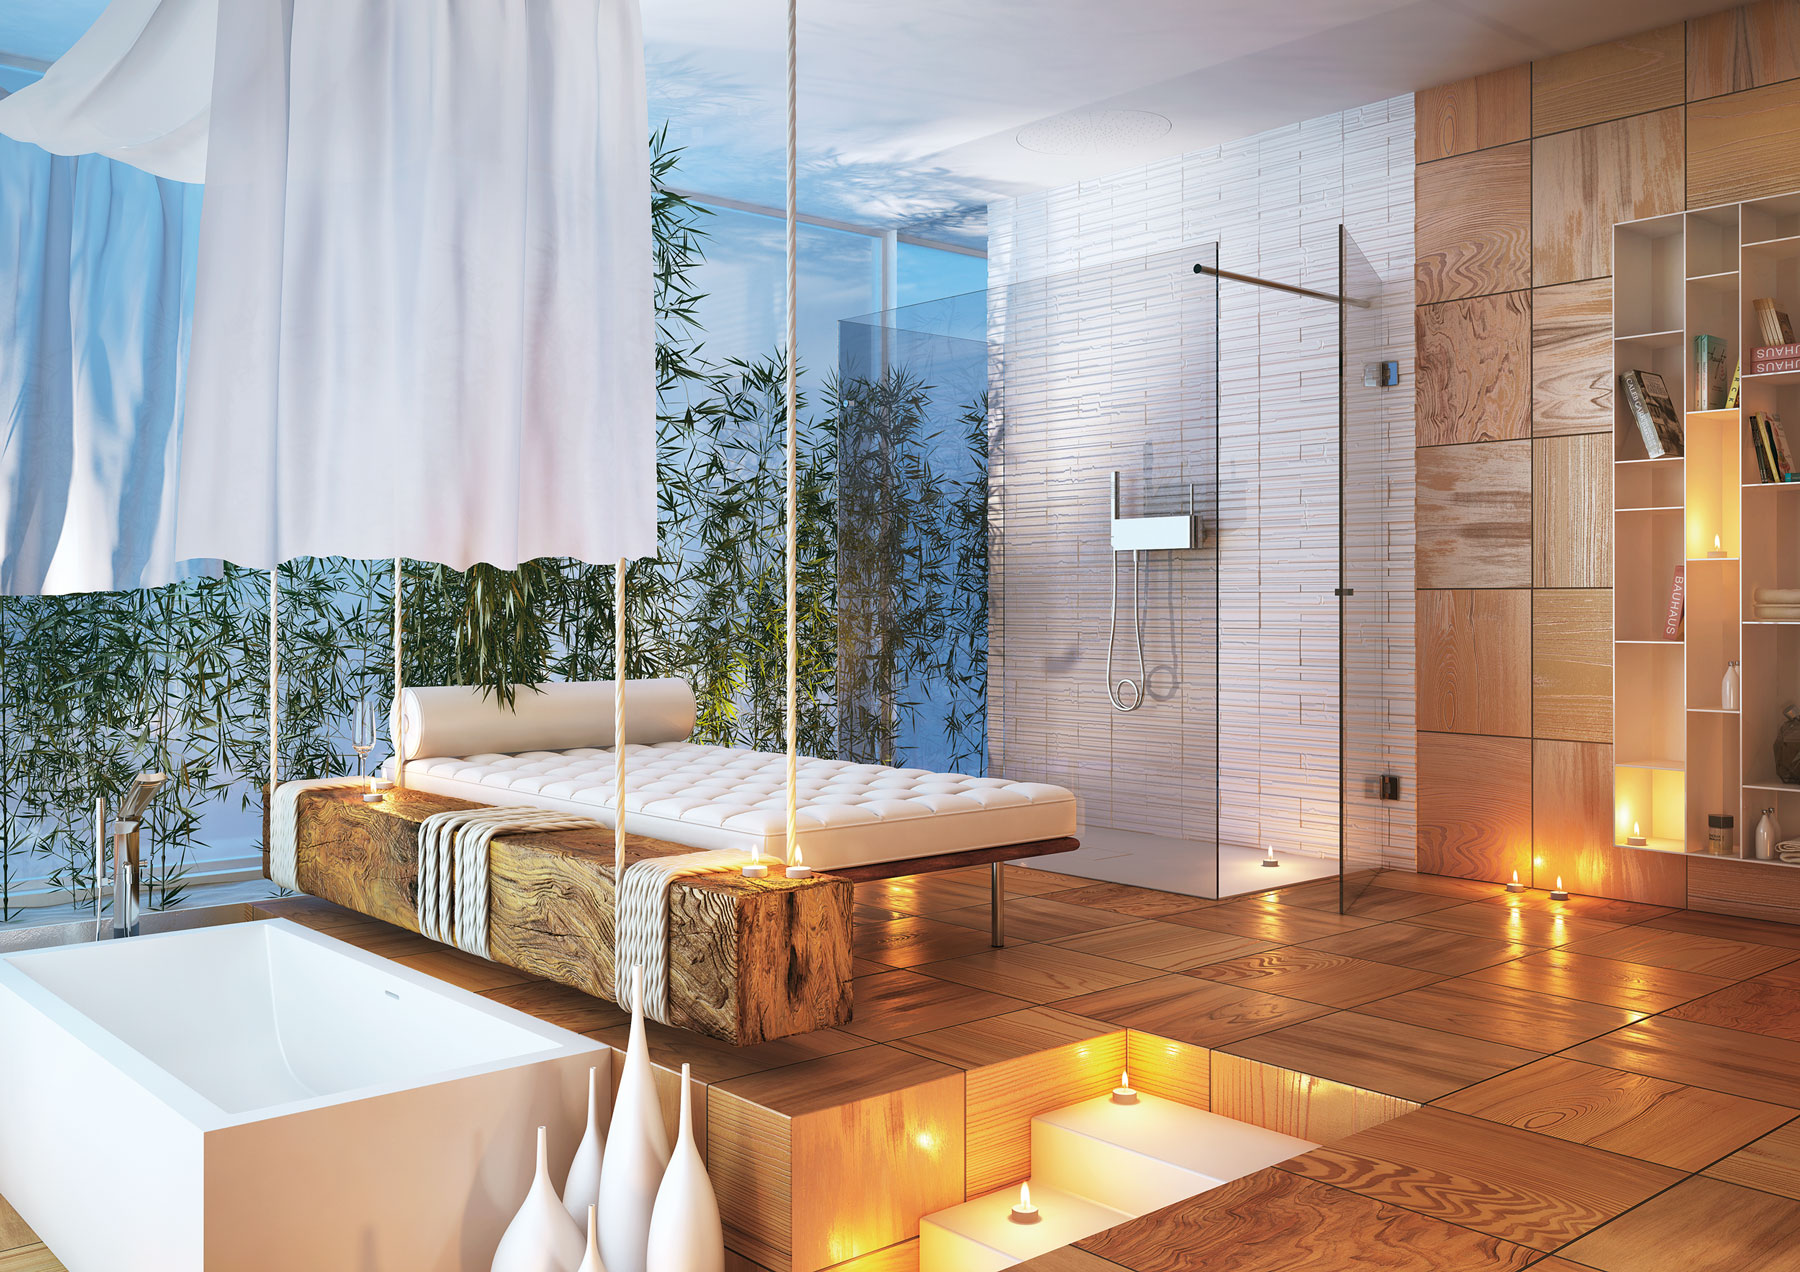 Badezimmer Wellness-atmosphäre Modern Bathrooms By Moma Design